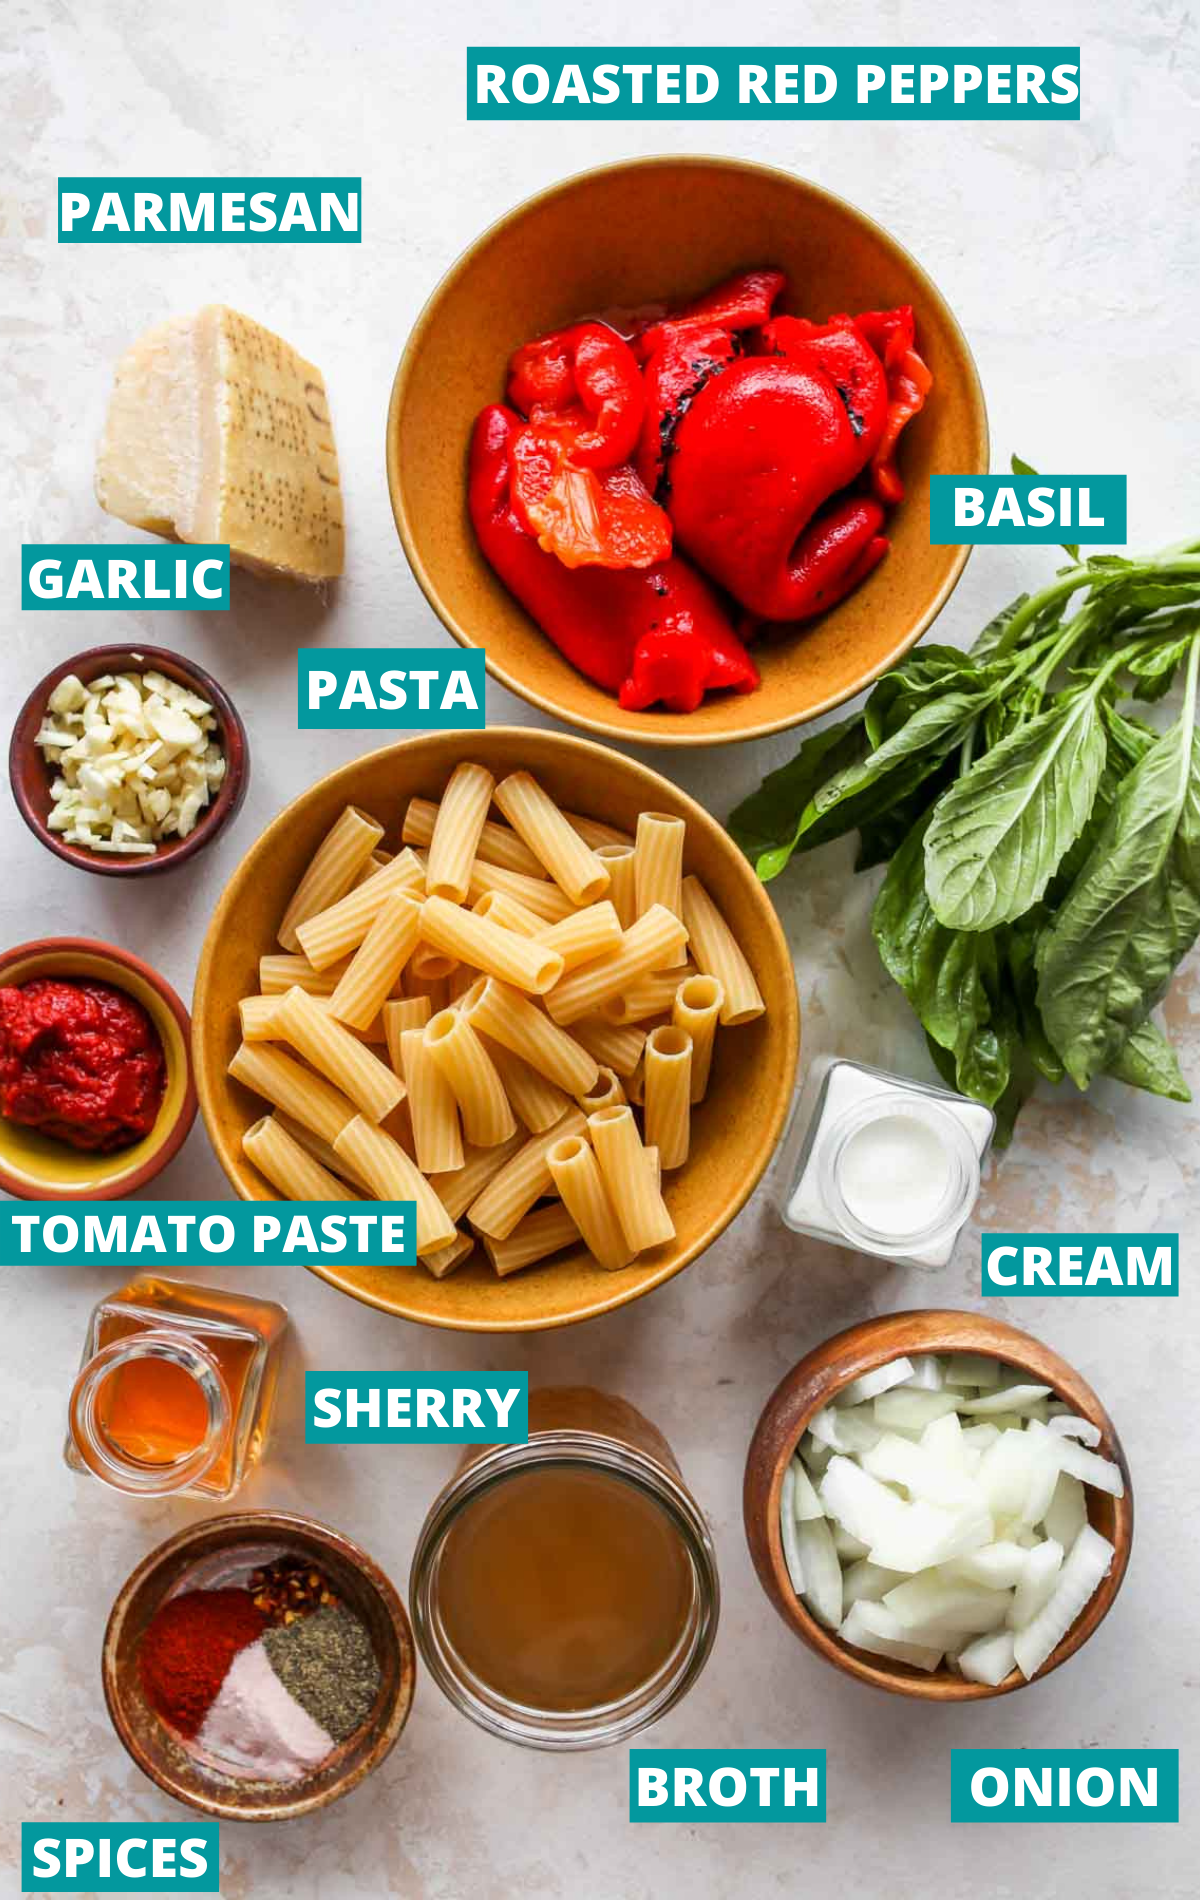 Red pepper pasta ingredients in separate bowls with blue labels